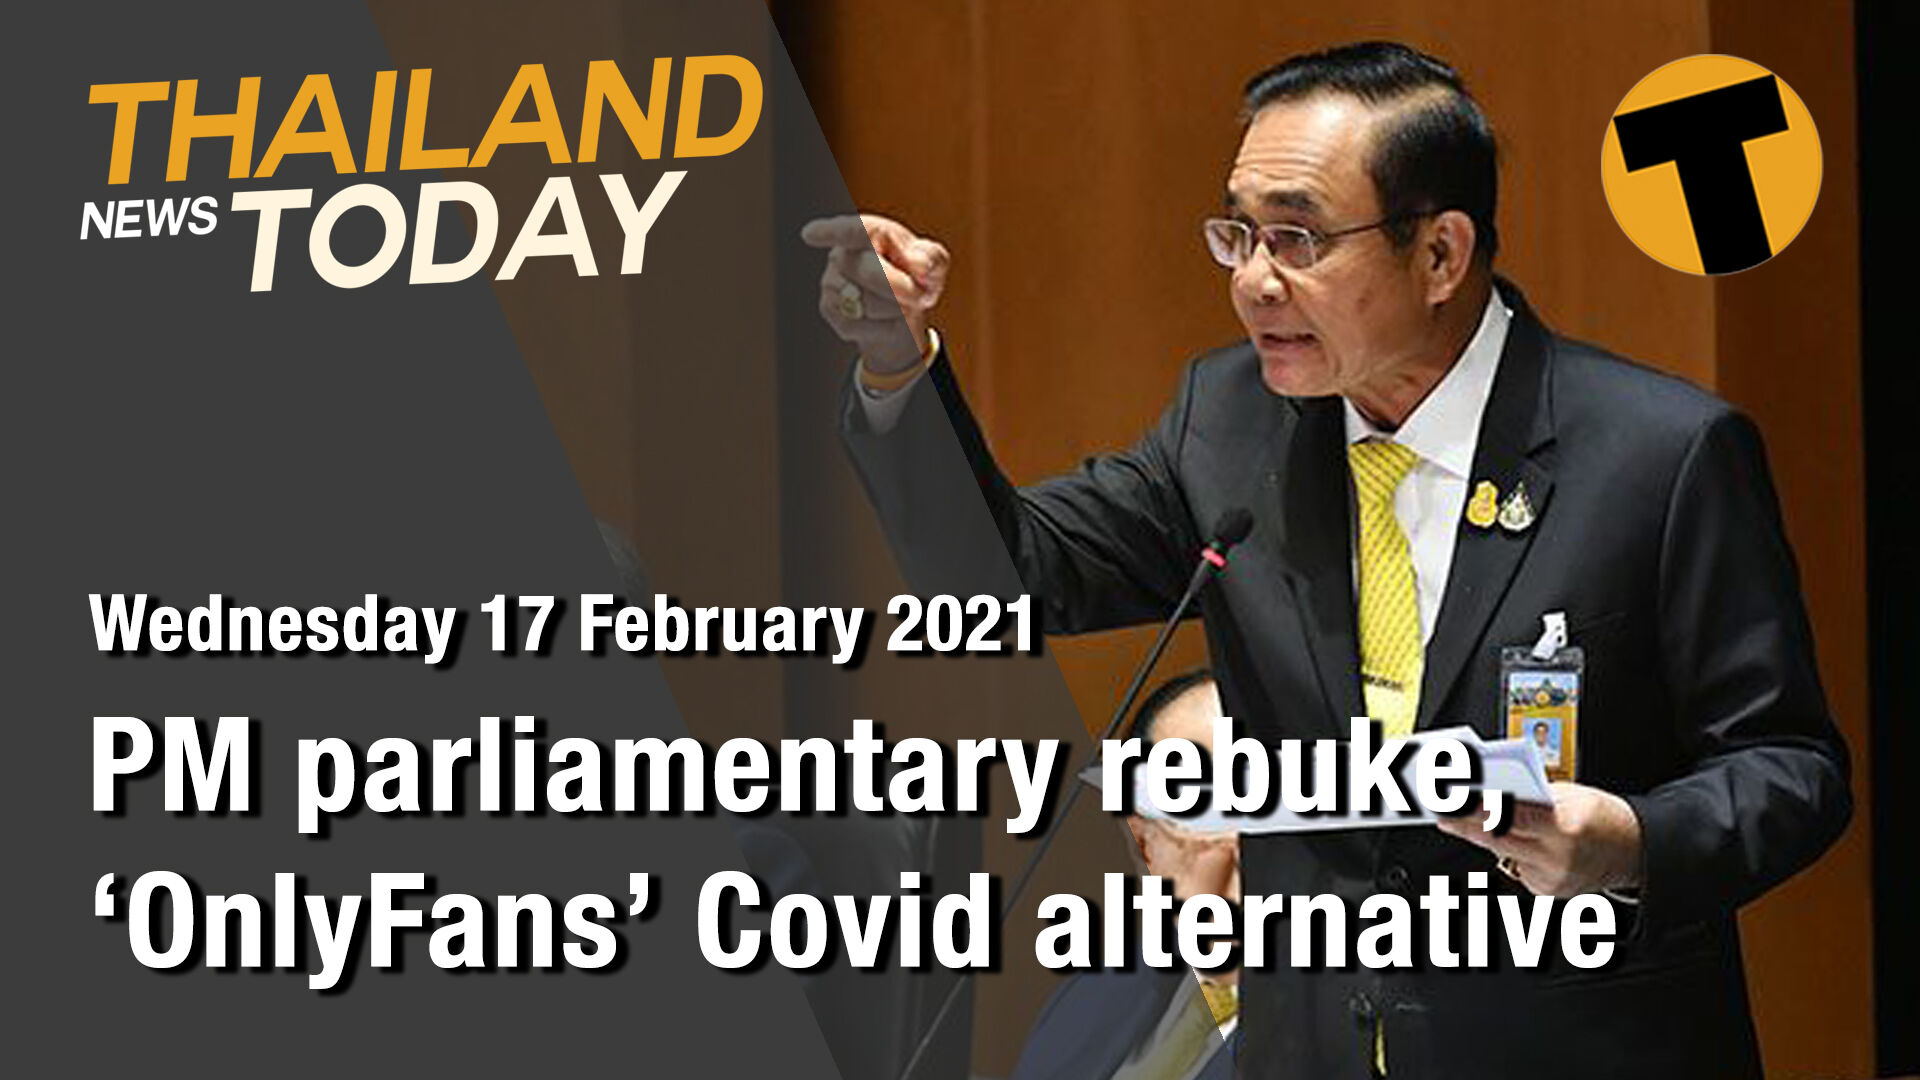 Thailand News Today | PM parliamentary rebuke, 'OnlyFans' Covid alternative | February 17 | The Thaiger